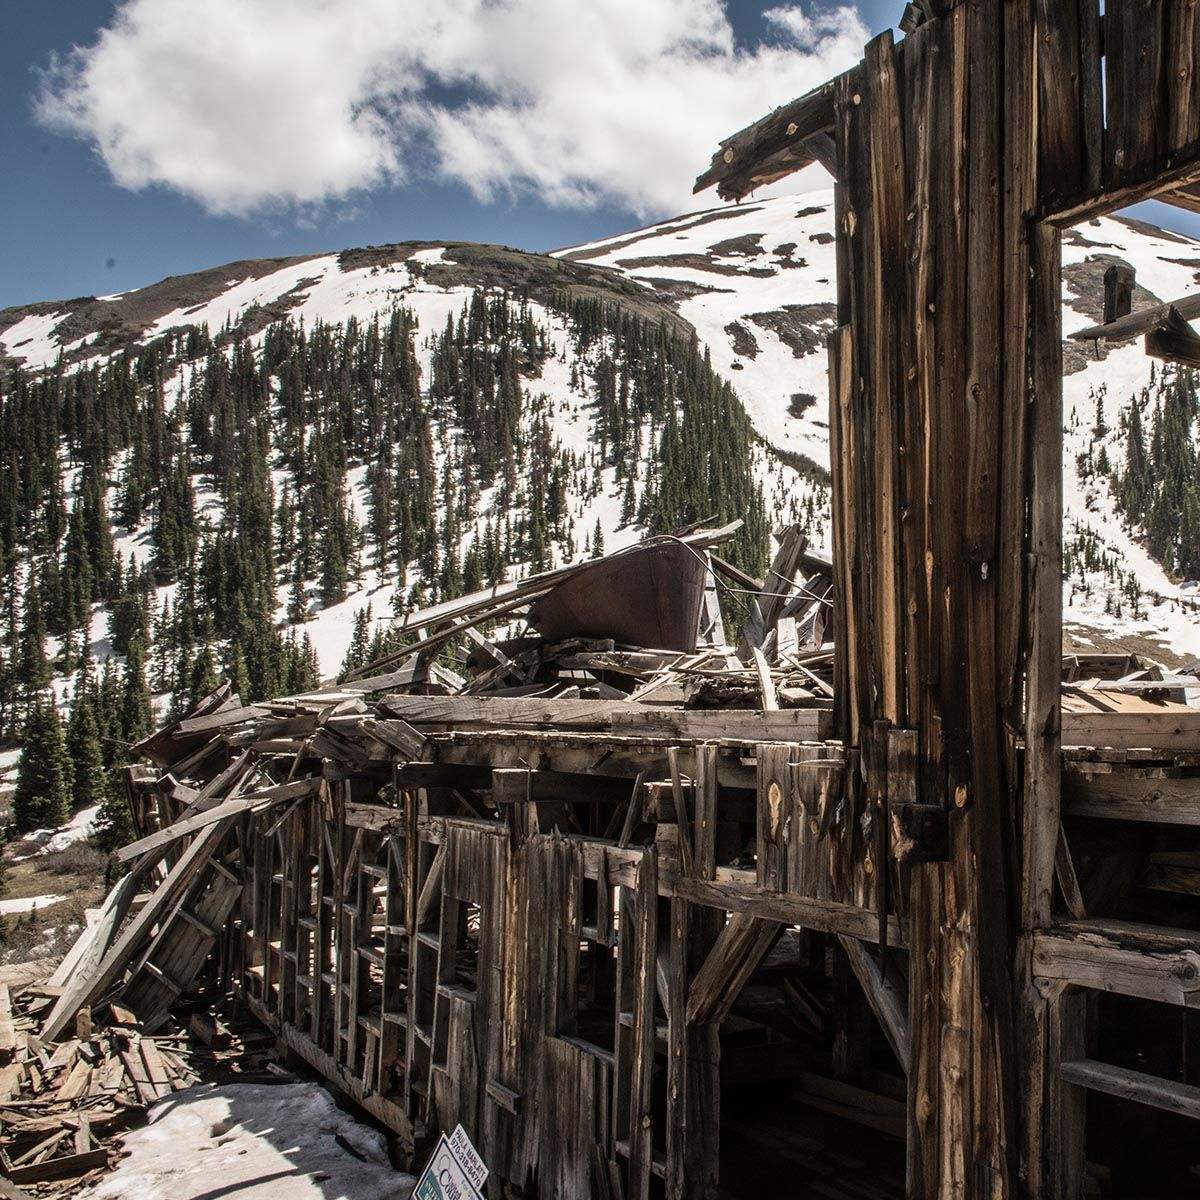 destroyed wooden house with snowy mountains in the background